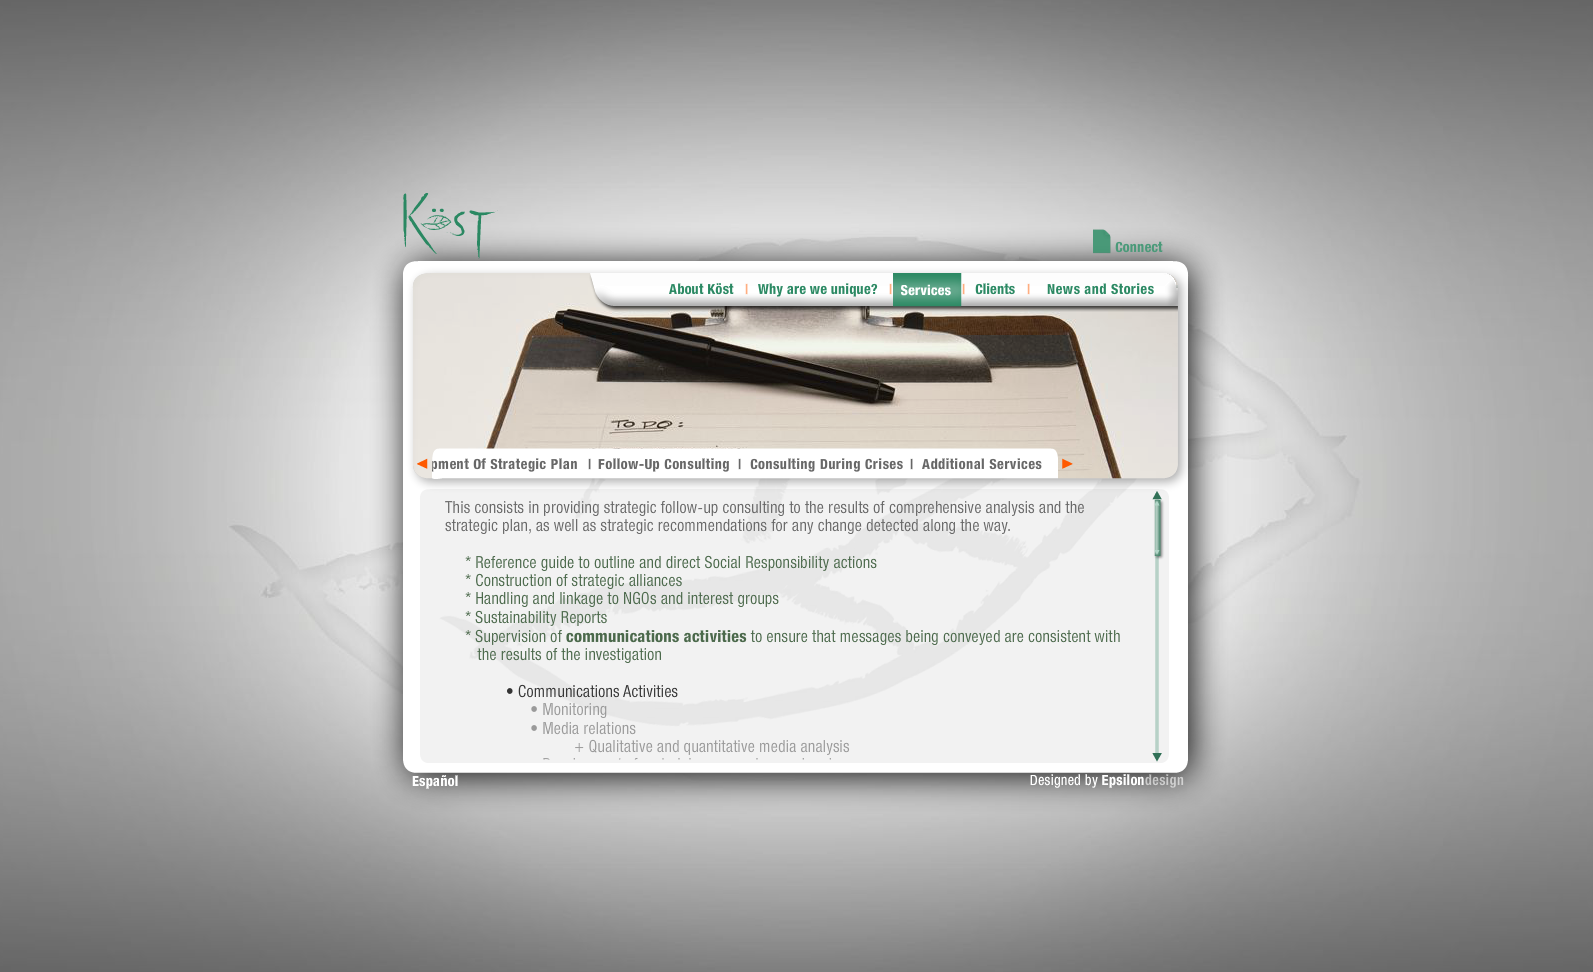 Green Kost - Services (Follow-up consulting)